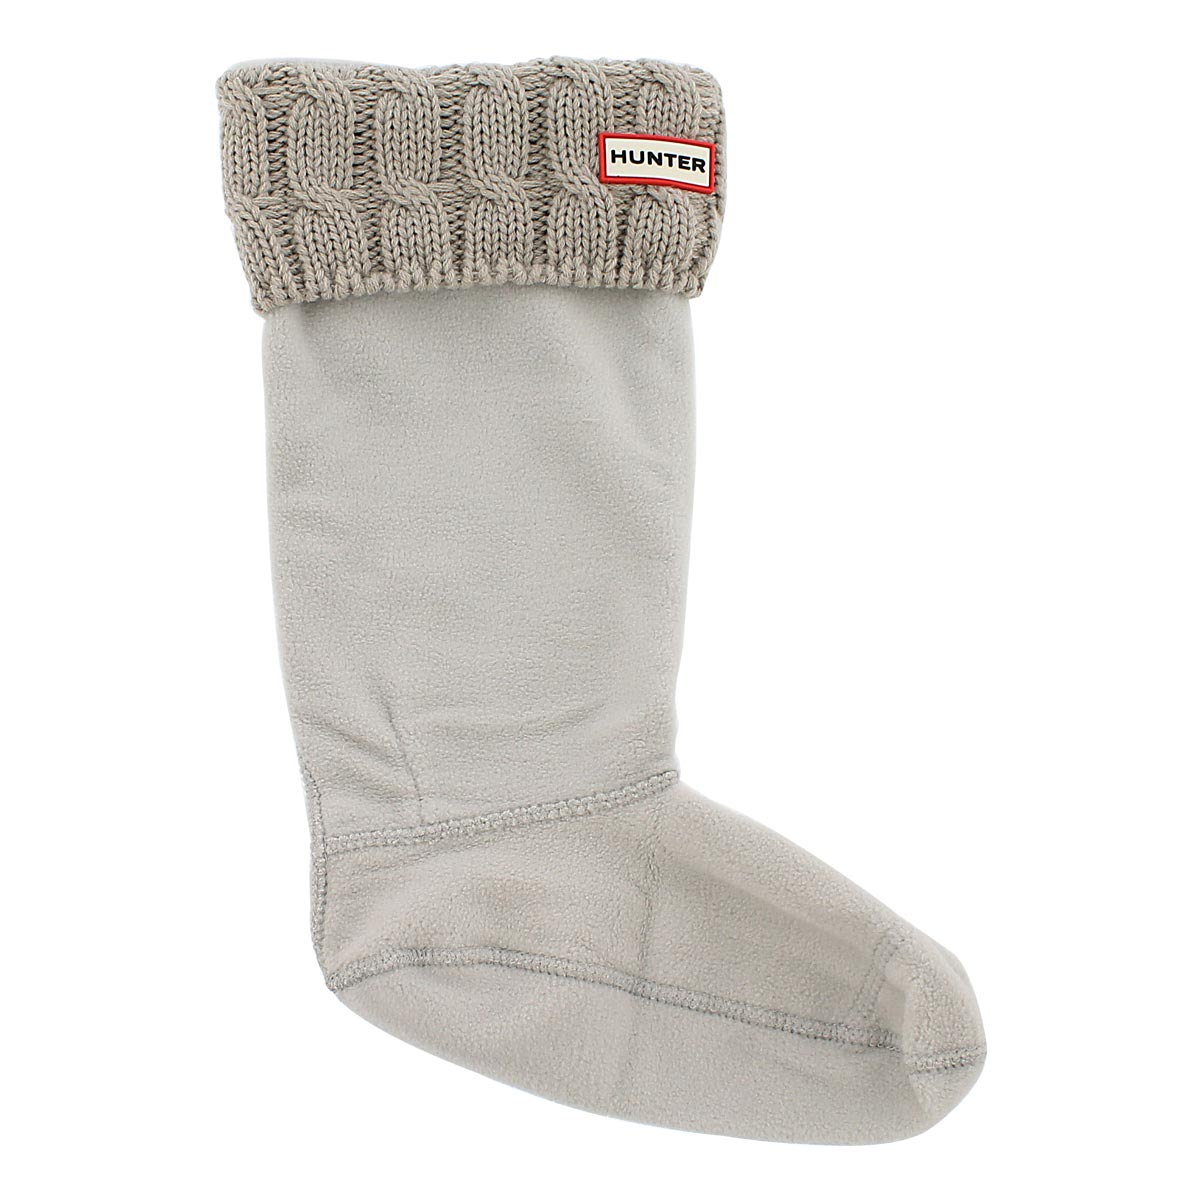 Lds 6 Stitch Cable greige boot sock